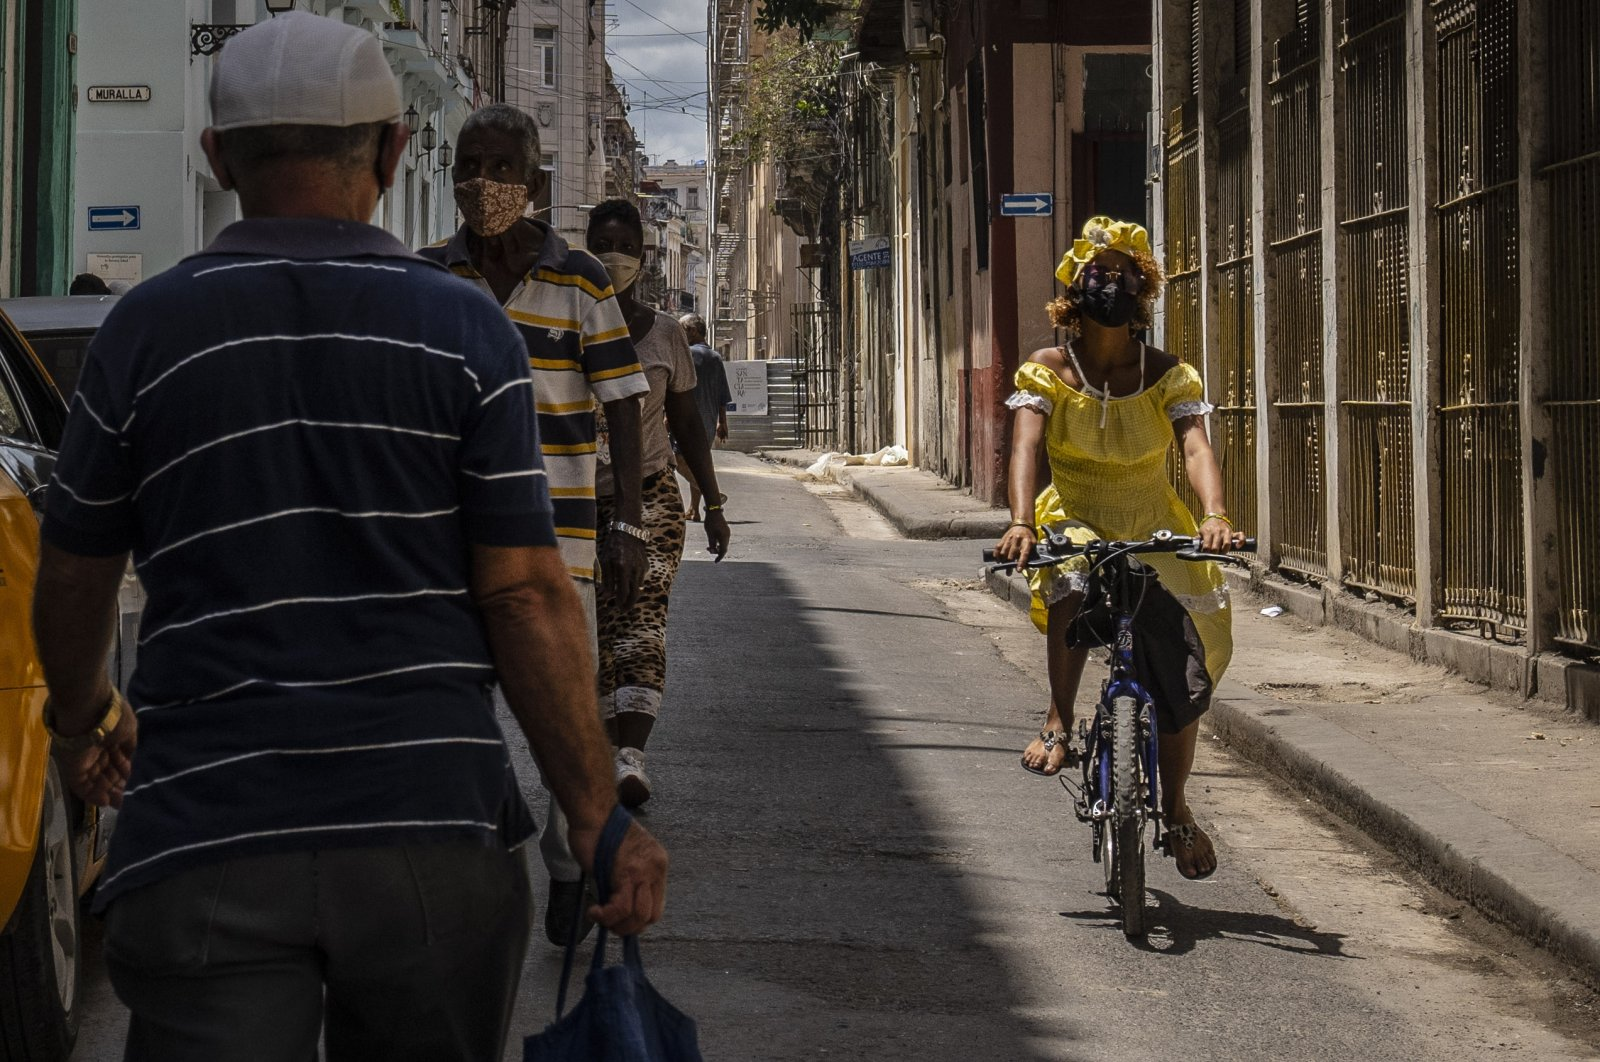 A woman rides her bicycle along a street in Havana, Cuba, Wednesday, June 2, 2021. (AP Photo / Ramon Espinosa)